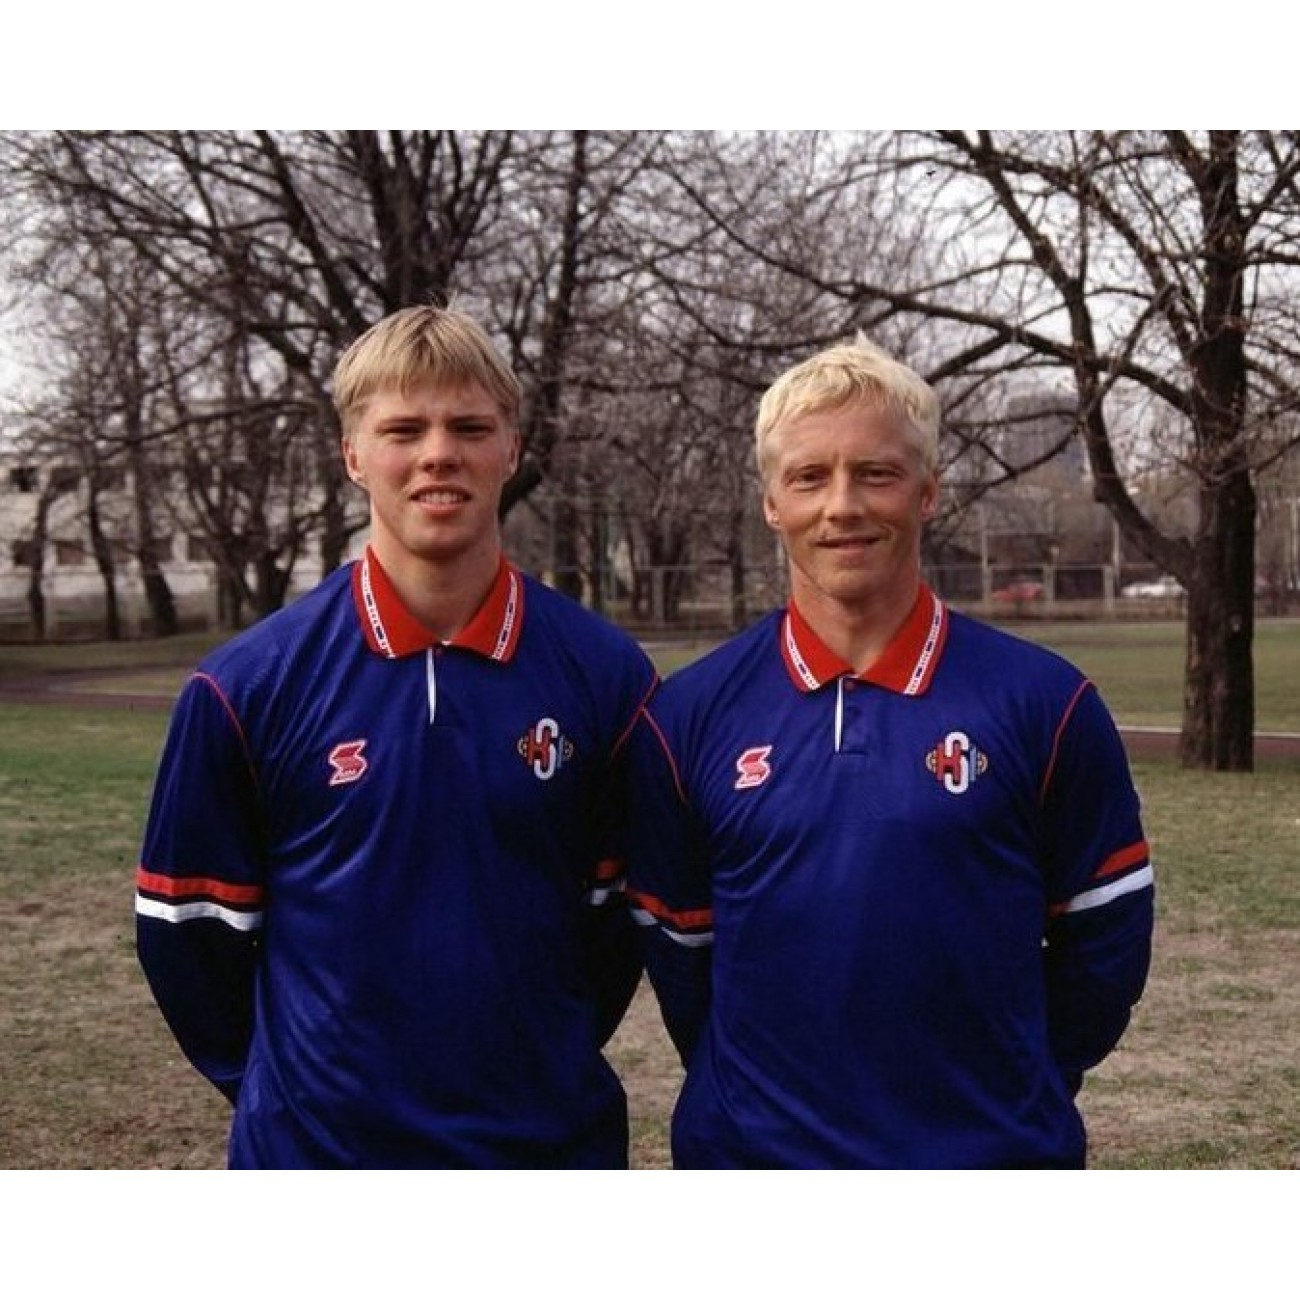 f8303e075ae ... Iceland 1996 Retro Shirt. Father and son Guðjohnsen played in the same  match in 1996